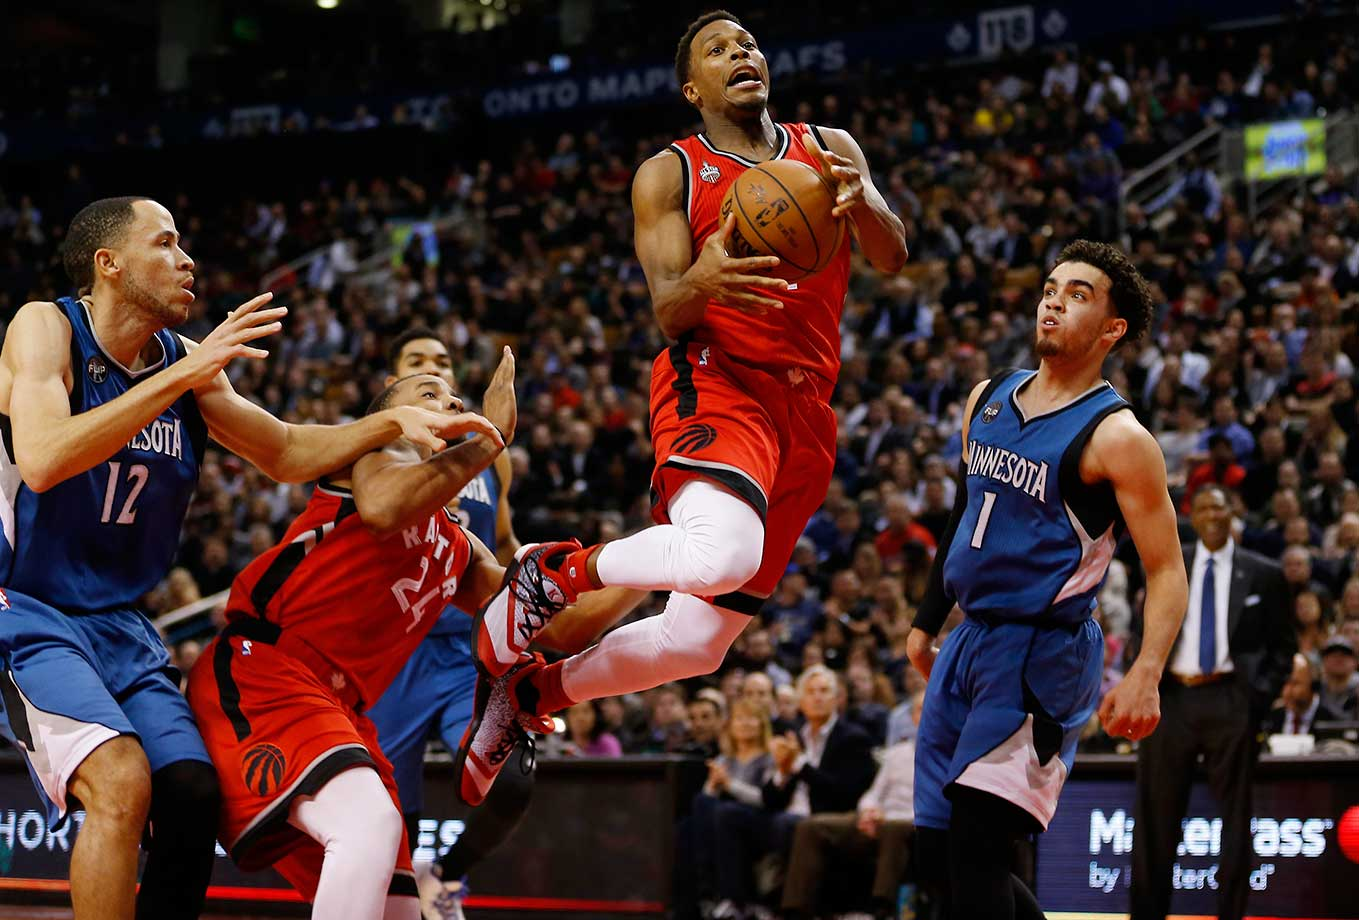 Toronto Raptors guard Kyle Lowry flies to the basket against the Minnesota Timberwolves.